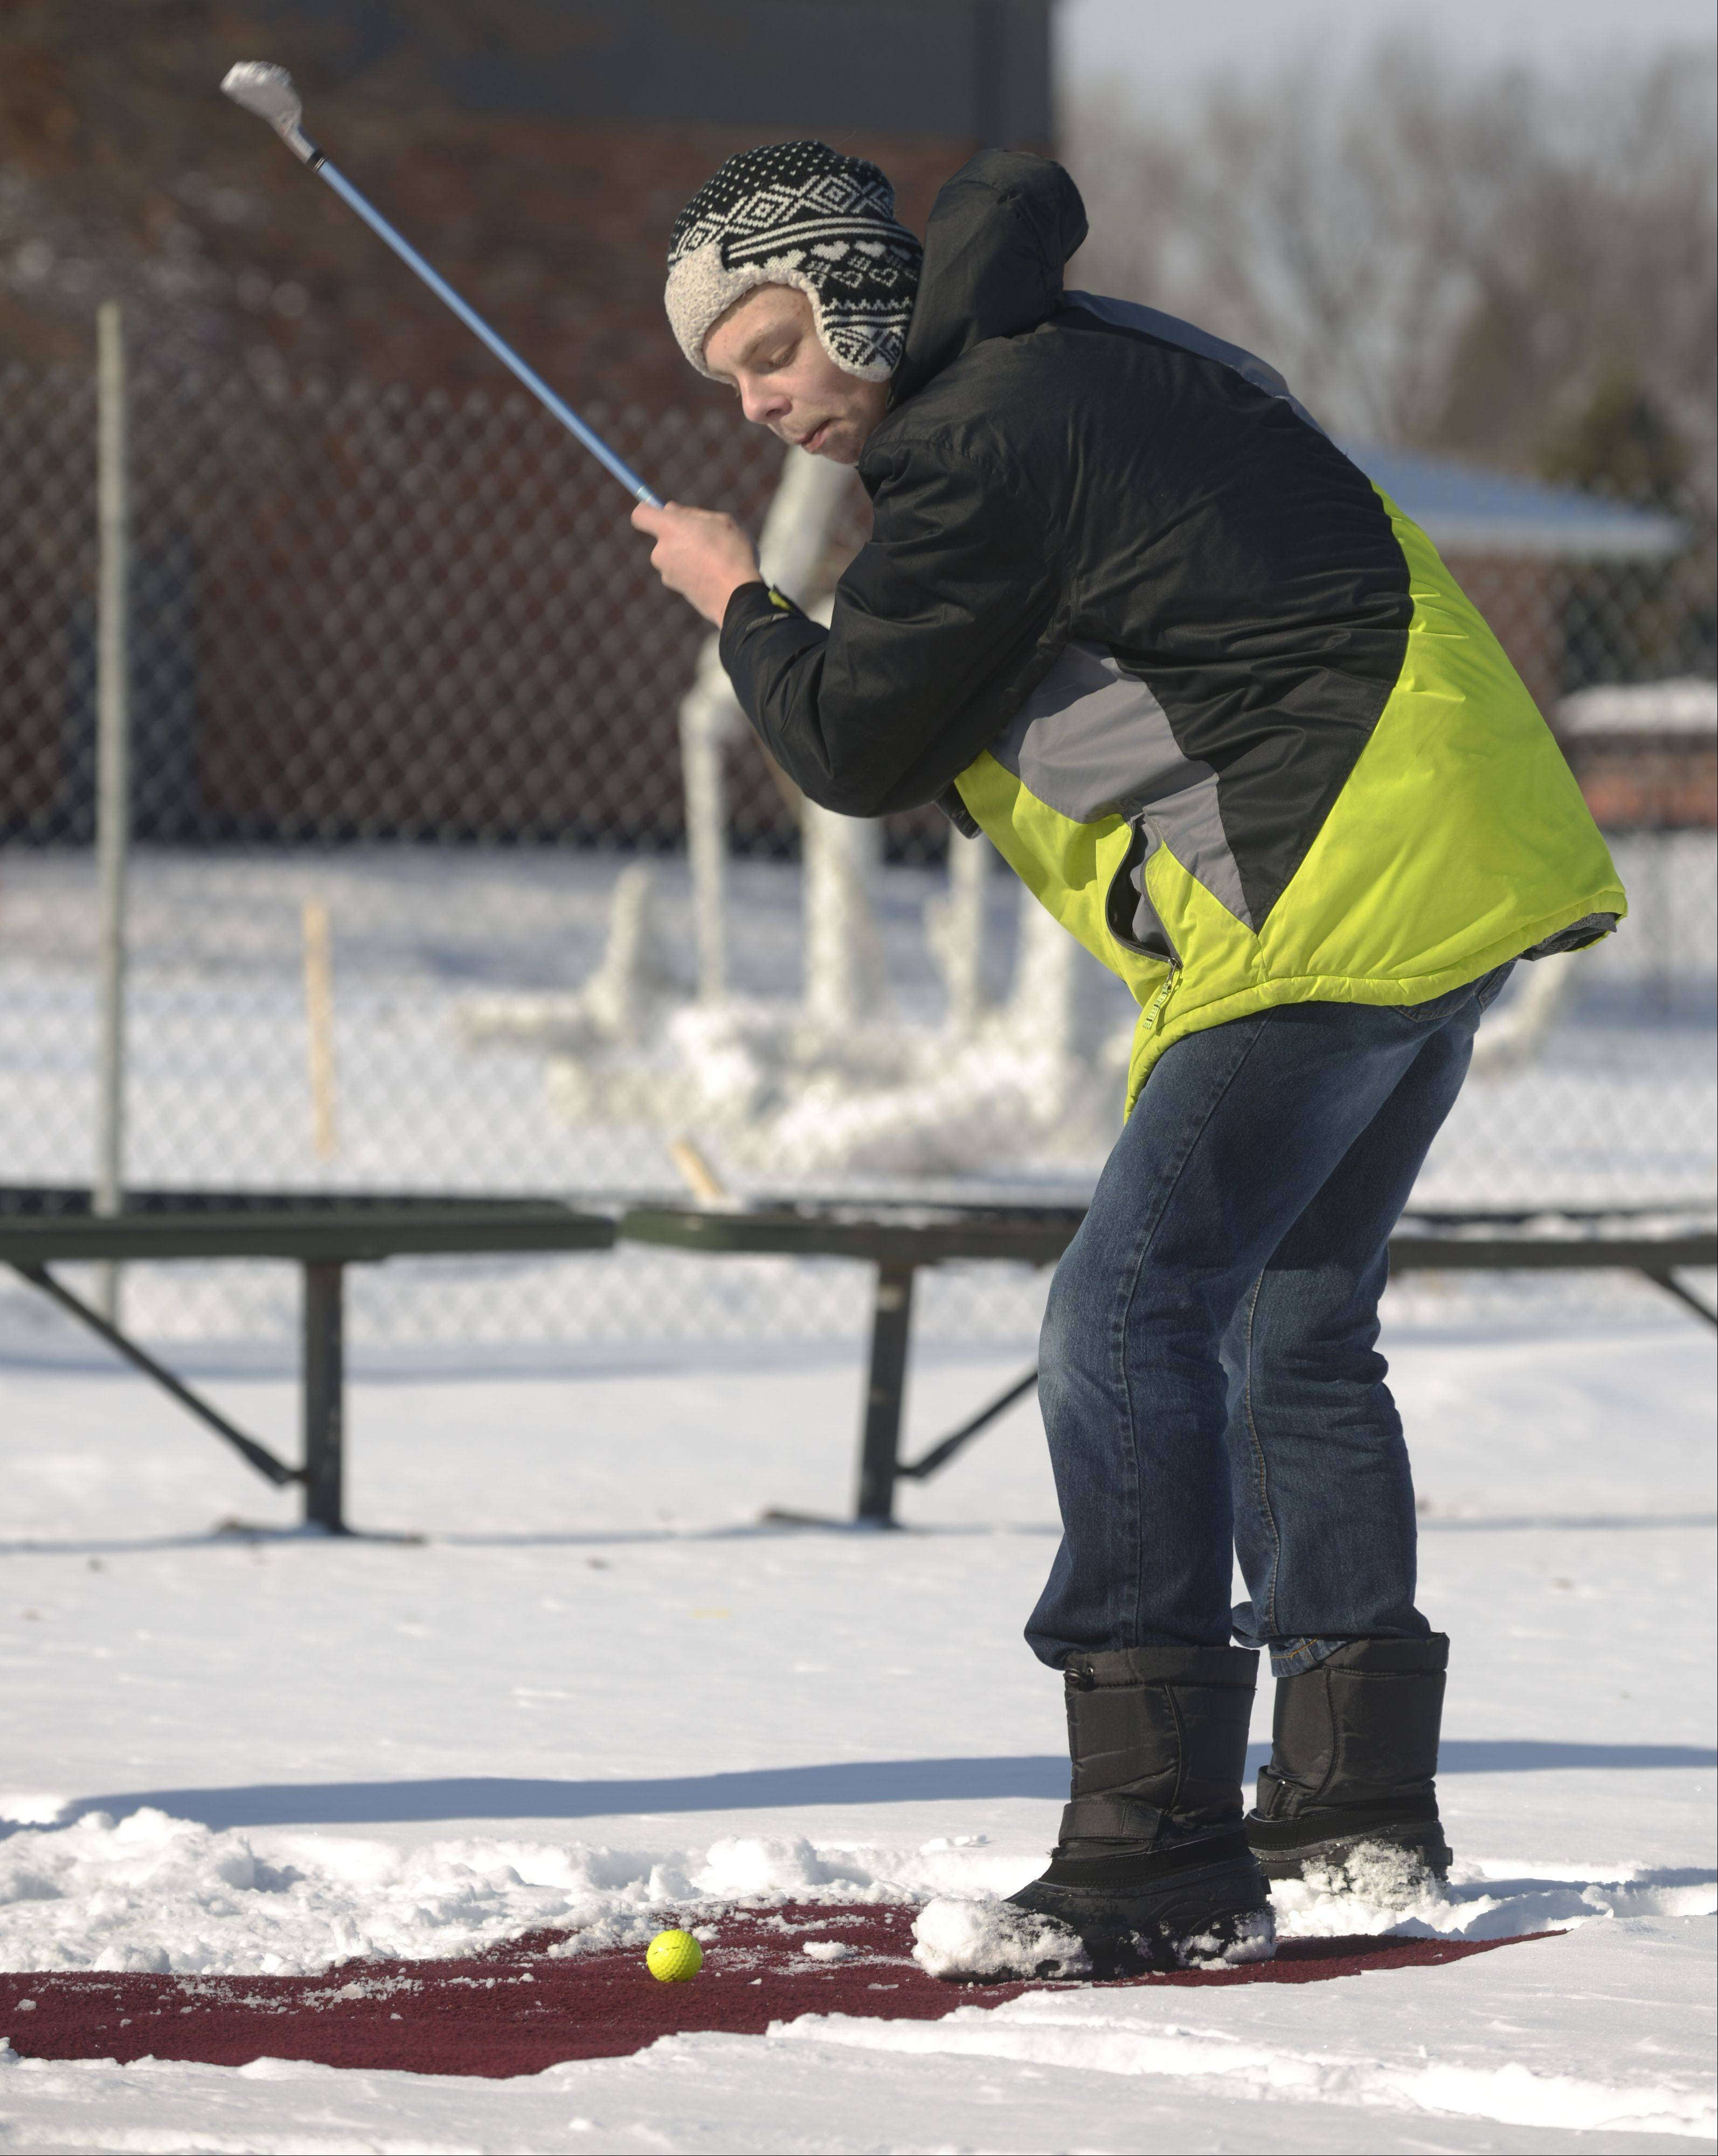 Jason Elbert, 16 of Addison tries out snow golf Sunday at Addison's annual WinterFEST at Community Park. The event featured other winter-themed events like marshmallow roasting, as well as indoor activities like an obstacle course and bounce house.